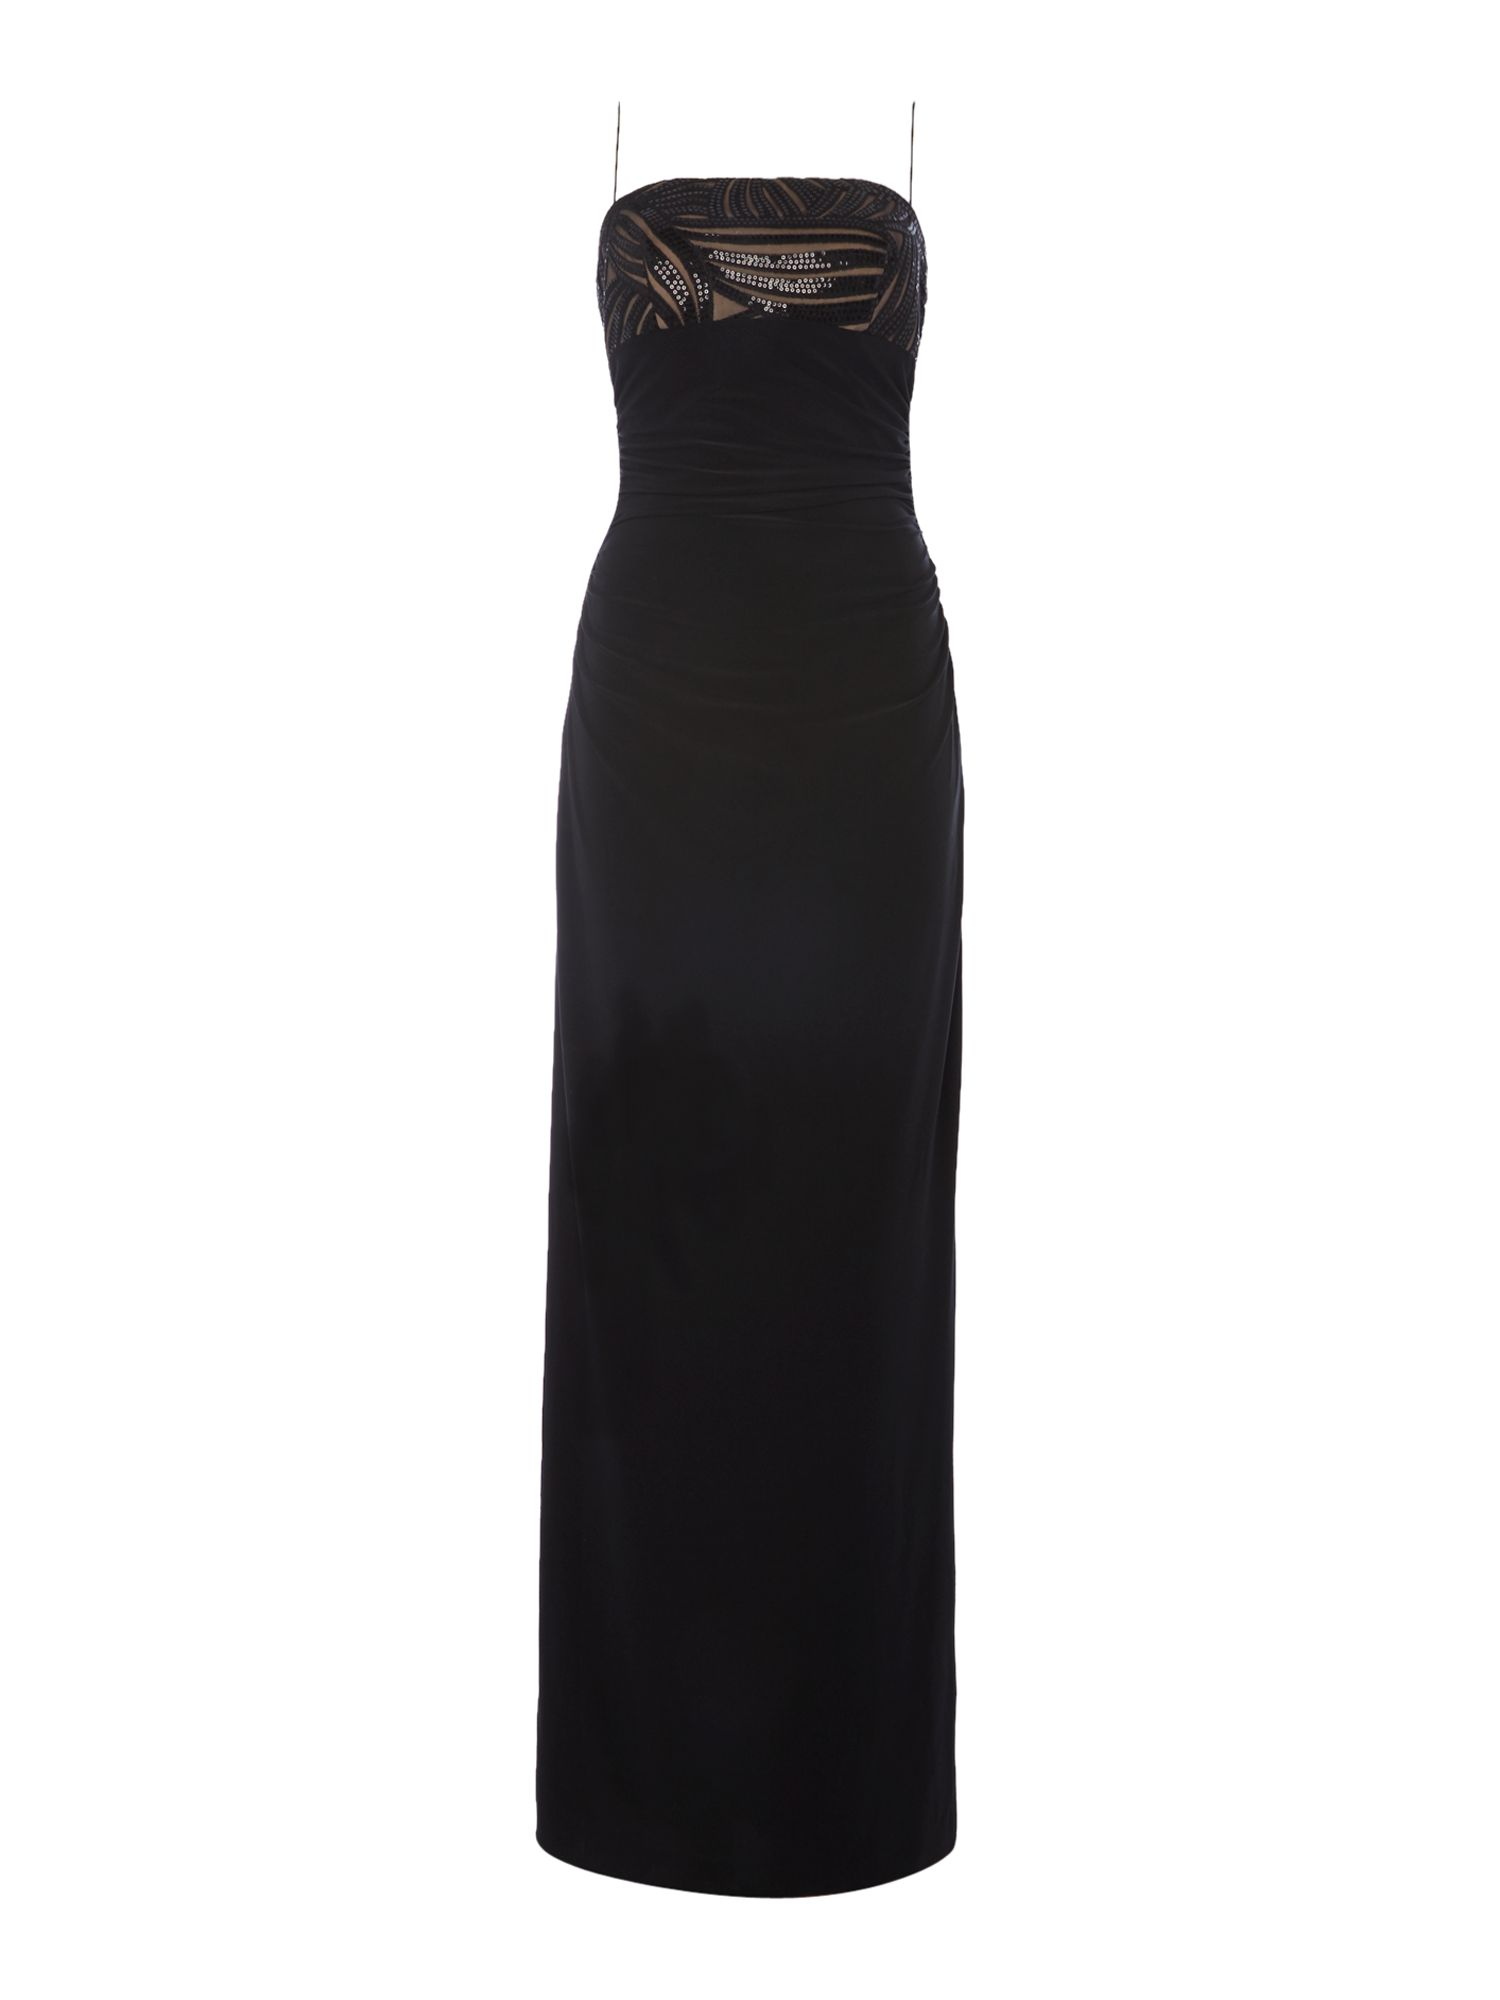 JS Collections Strapless lace top dress, Black